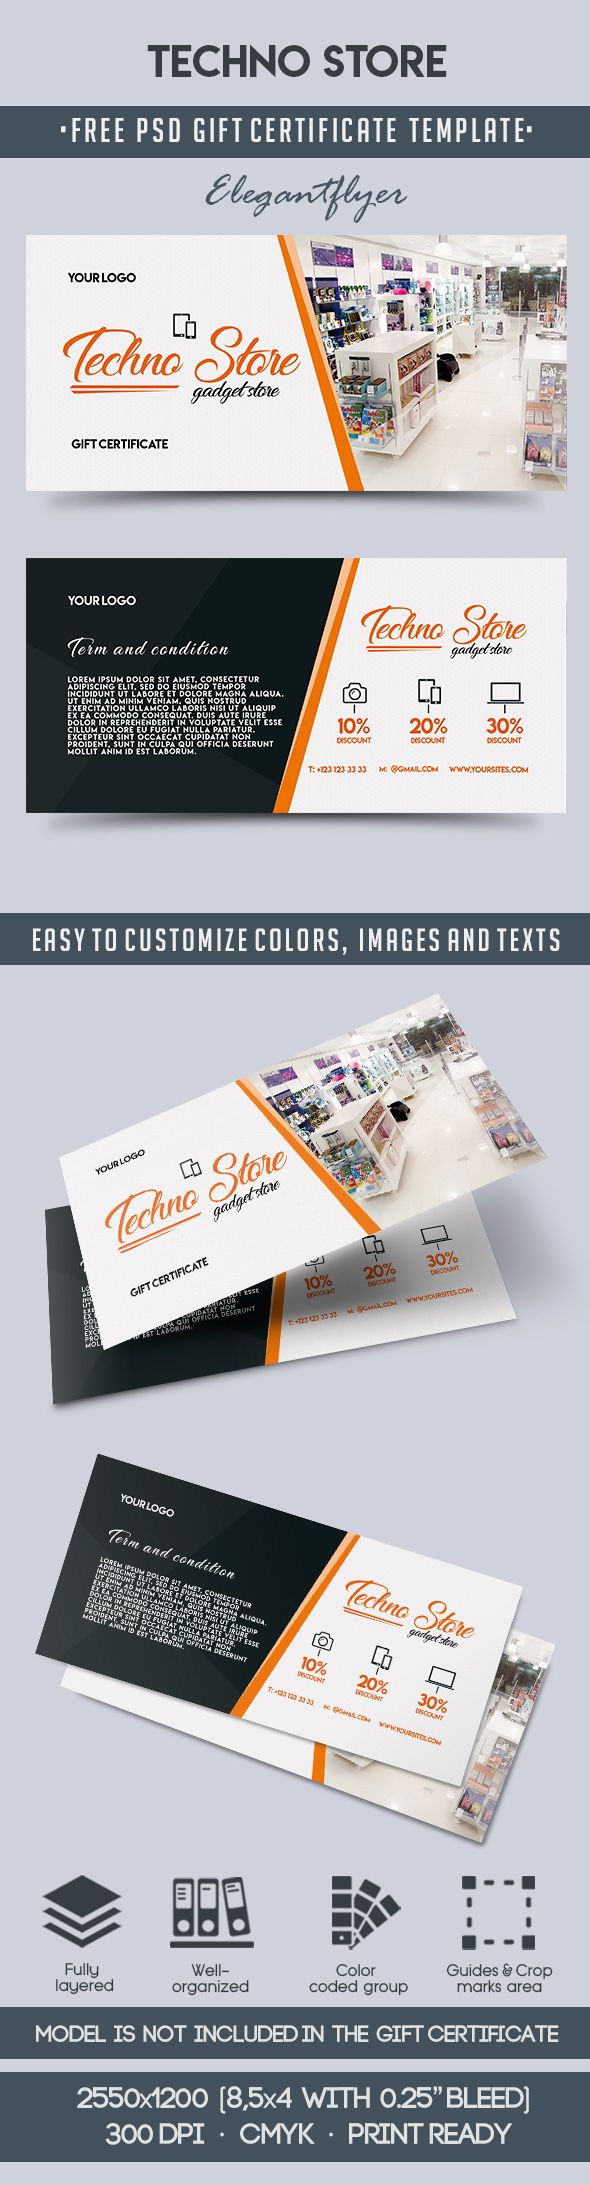 Techno Store – Free Gift Certificate PSD Template